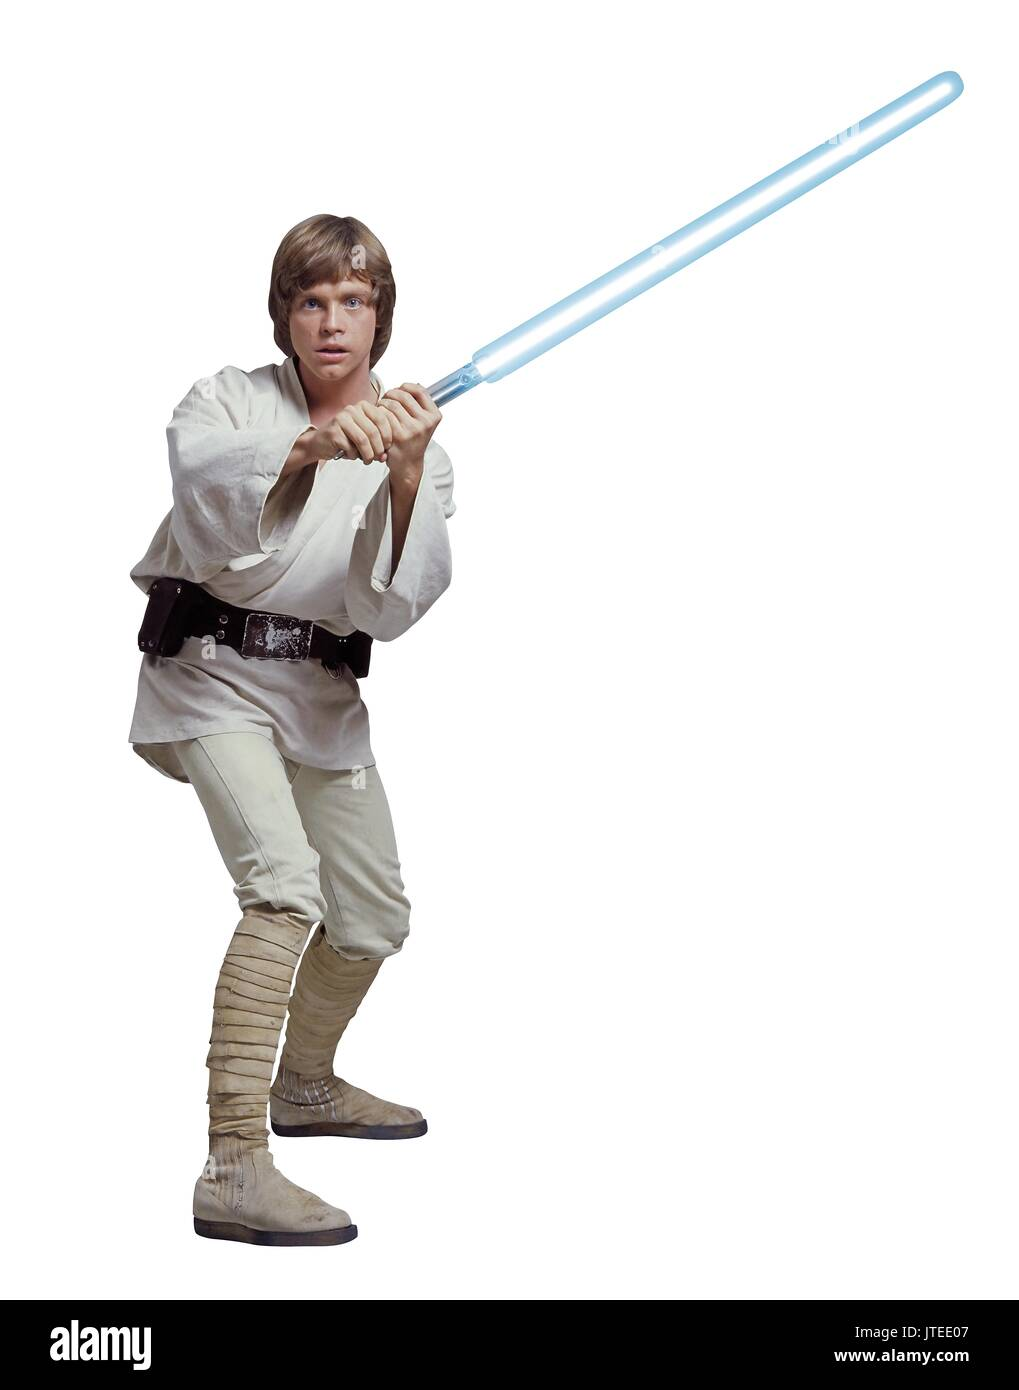 MARK HAMILL STAR WARS; STAR WARS: EPISODE IV - A NEW HOPE (1977) - Stock Image